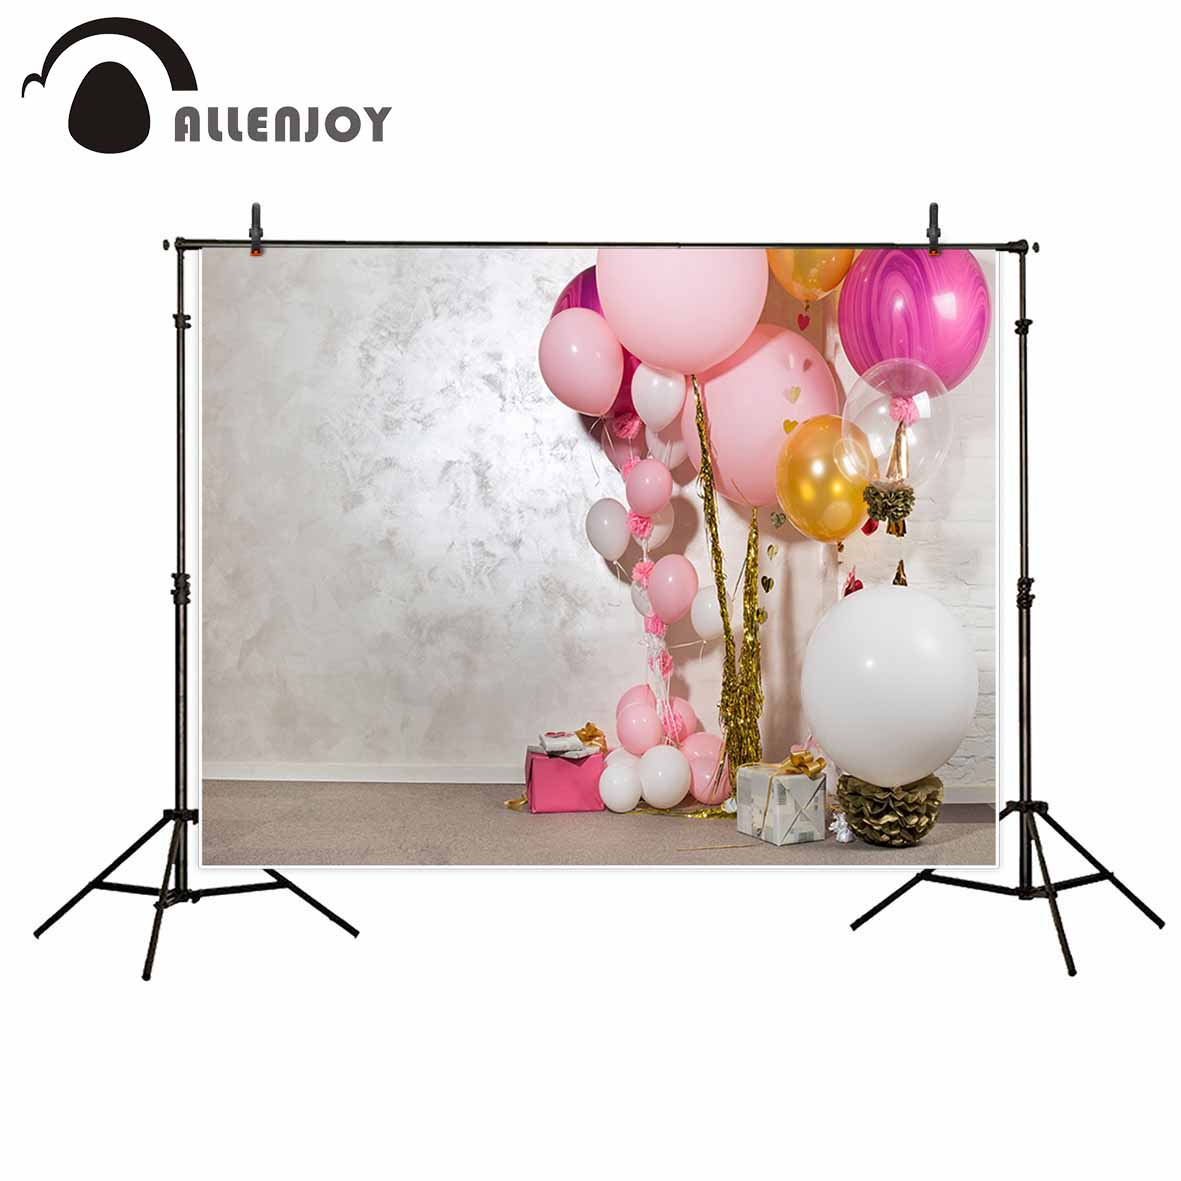 Allenjoy pink balloons girl decoration indoor photo backdrop white wall floor children gifts baby shower photography background allenjoy photography backdrop brick wall wooden floor white baby shower children background photo studio photocall